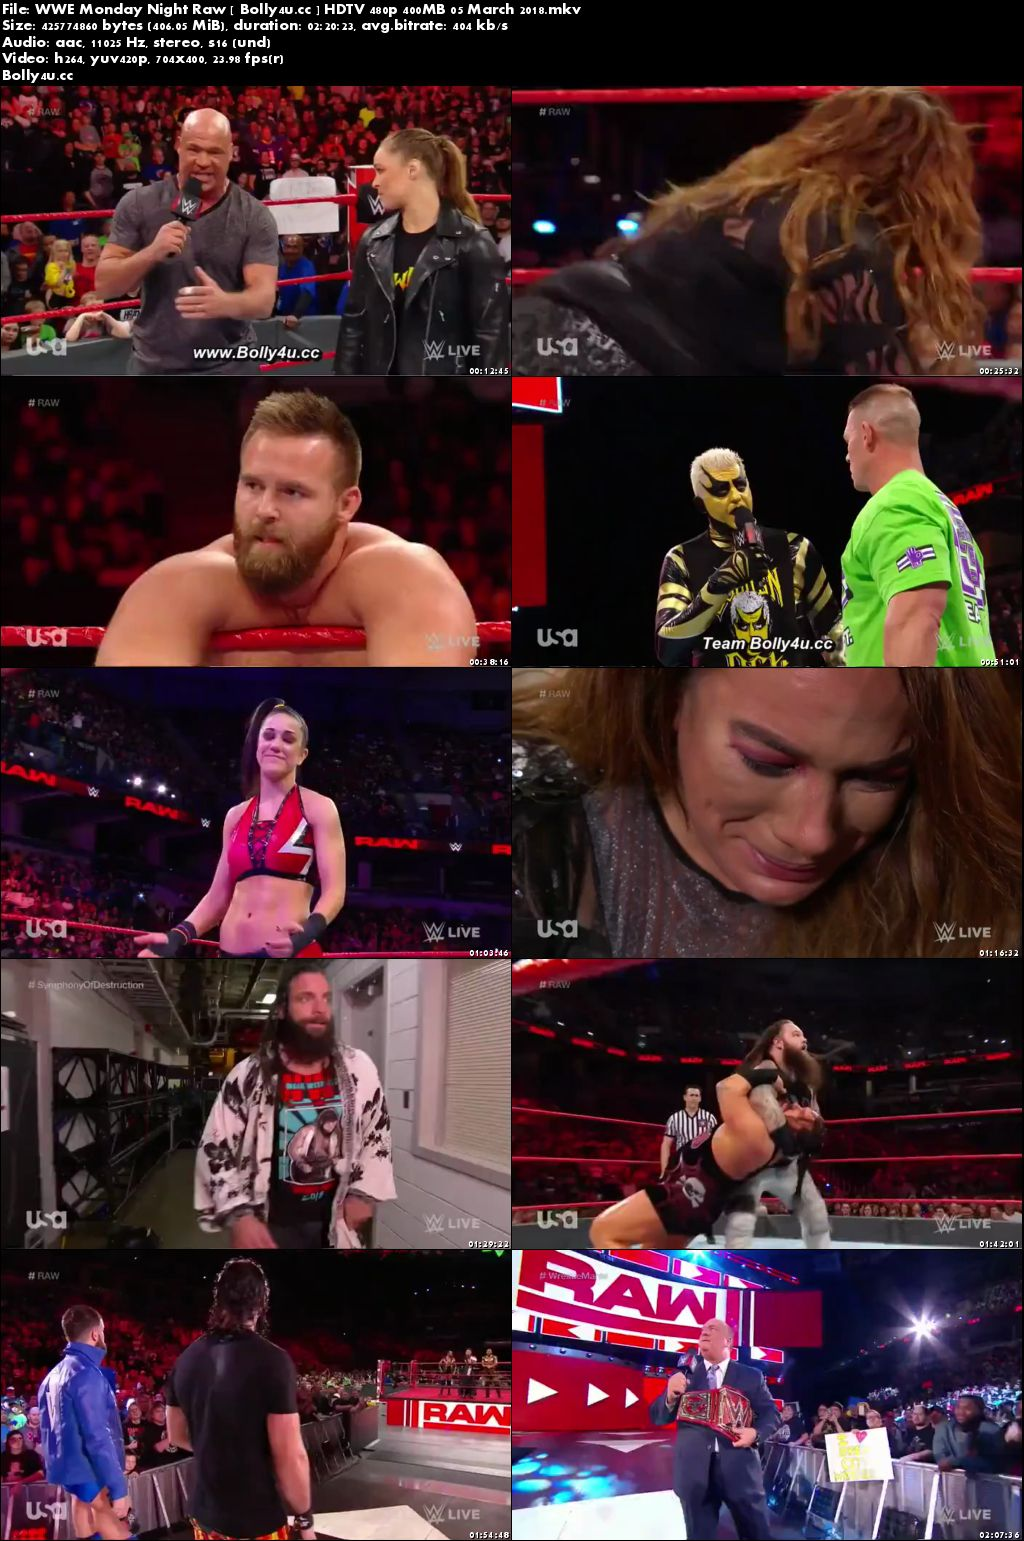 WWE Monday Night Raw HDTV 480p 400MB 05 March 2018 Download